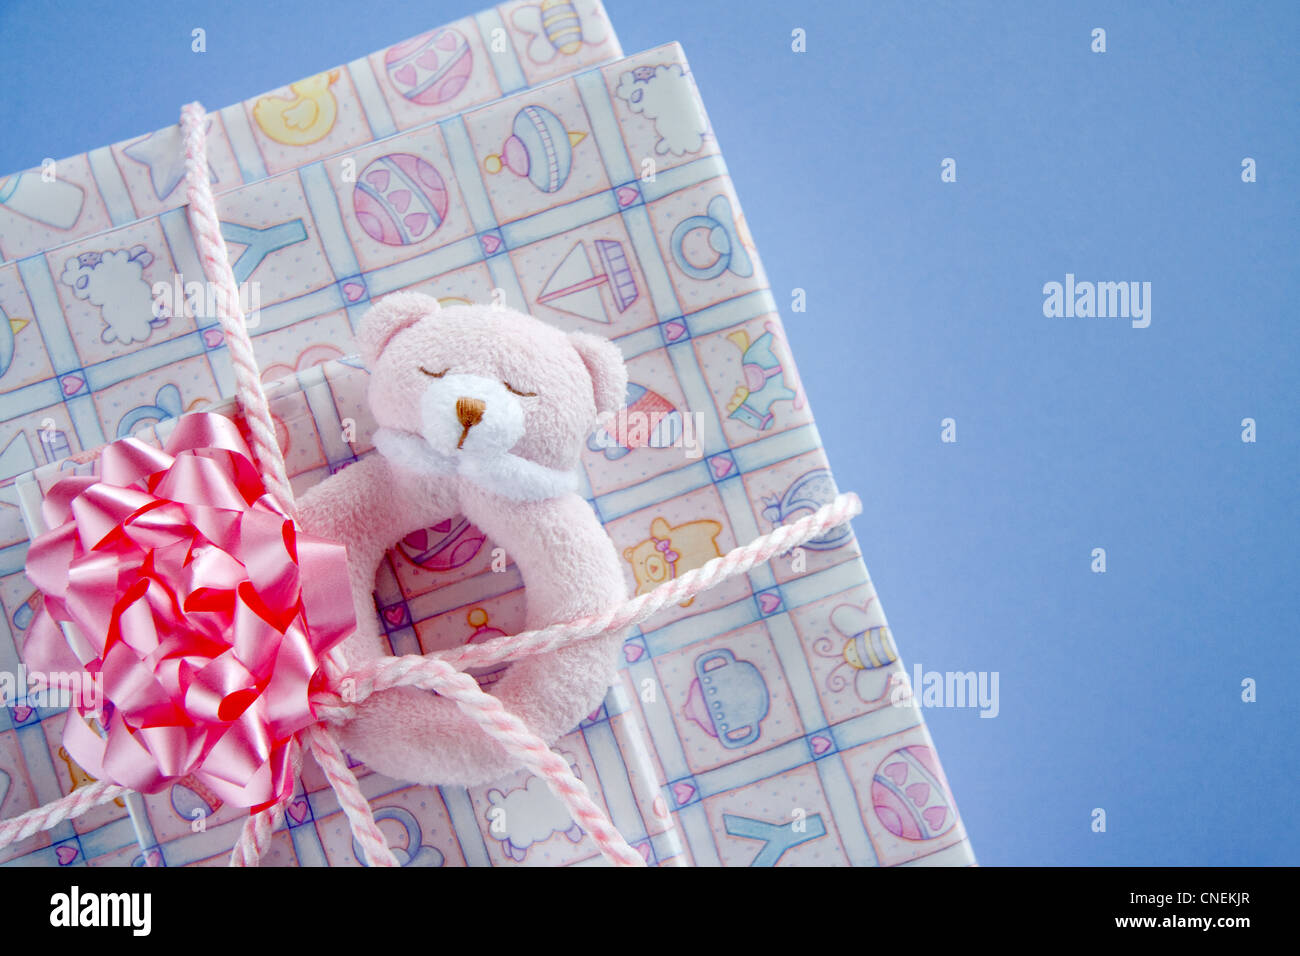 Baby shower gifts - Stock Image